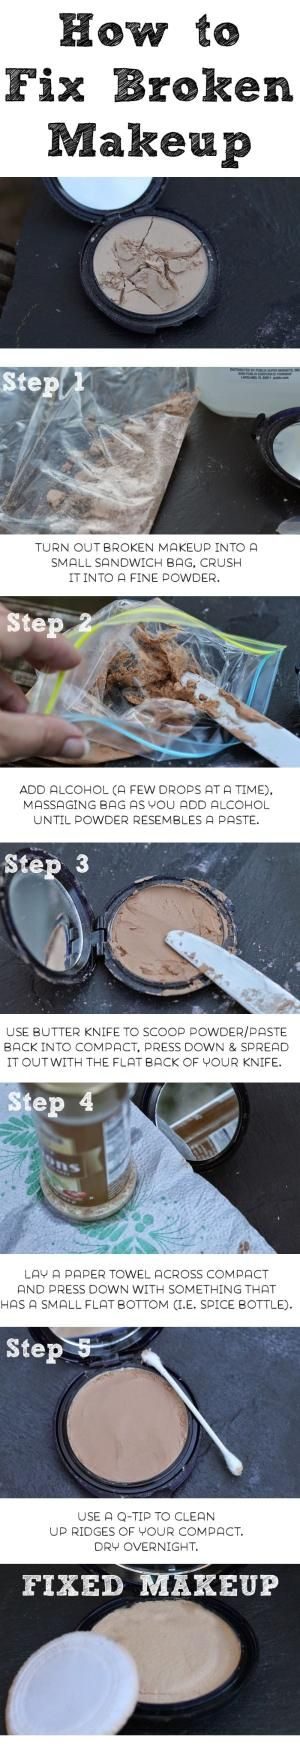 How to Fix Broken Eyeshadow, Blush or Foundation - Ah man! Don't you hate it when you break your favorite make up into a thousand pieces? Before you toss it in the trash, give this step-by-step tutorial on how to fix broken makeup a try. I assure you it's easier than you may think! by magdalenakruk